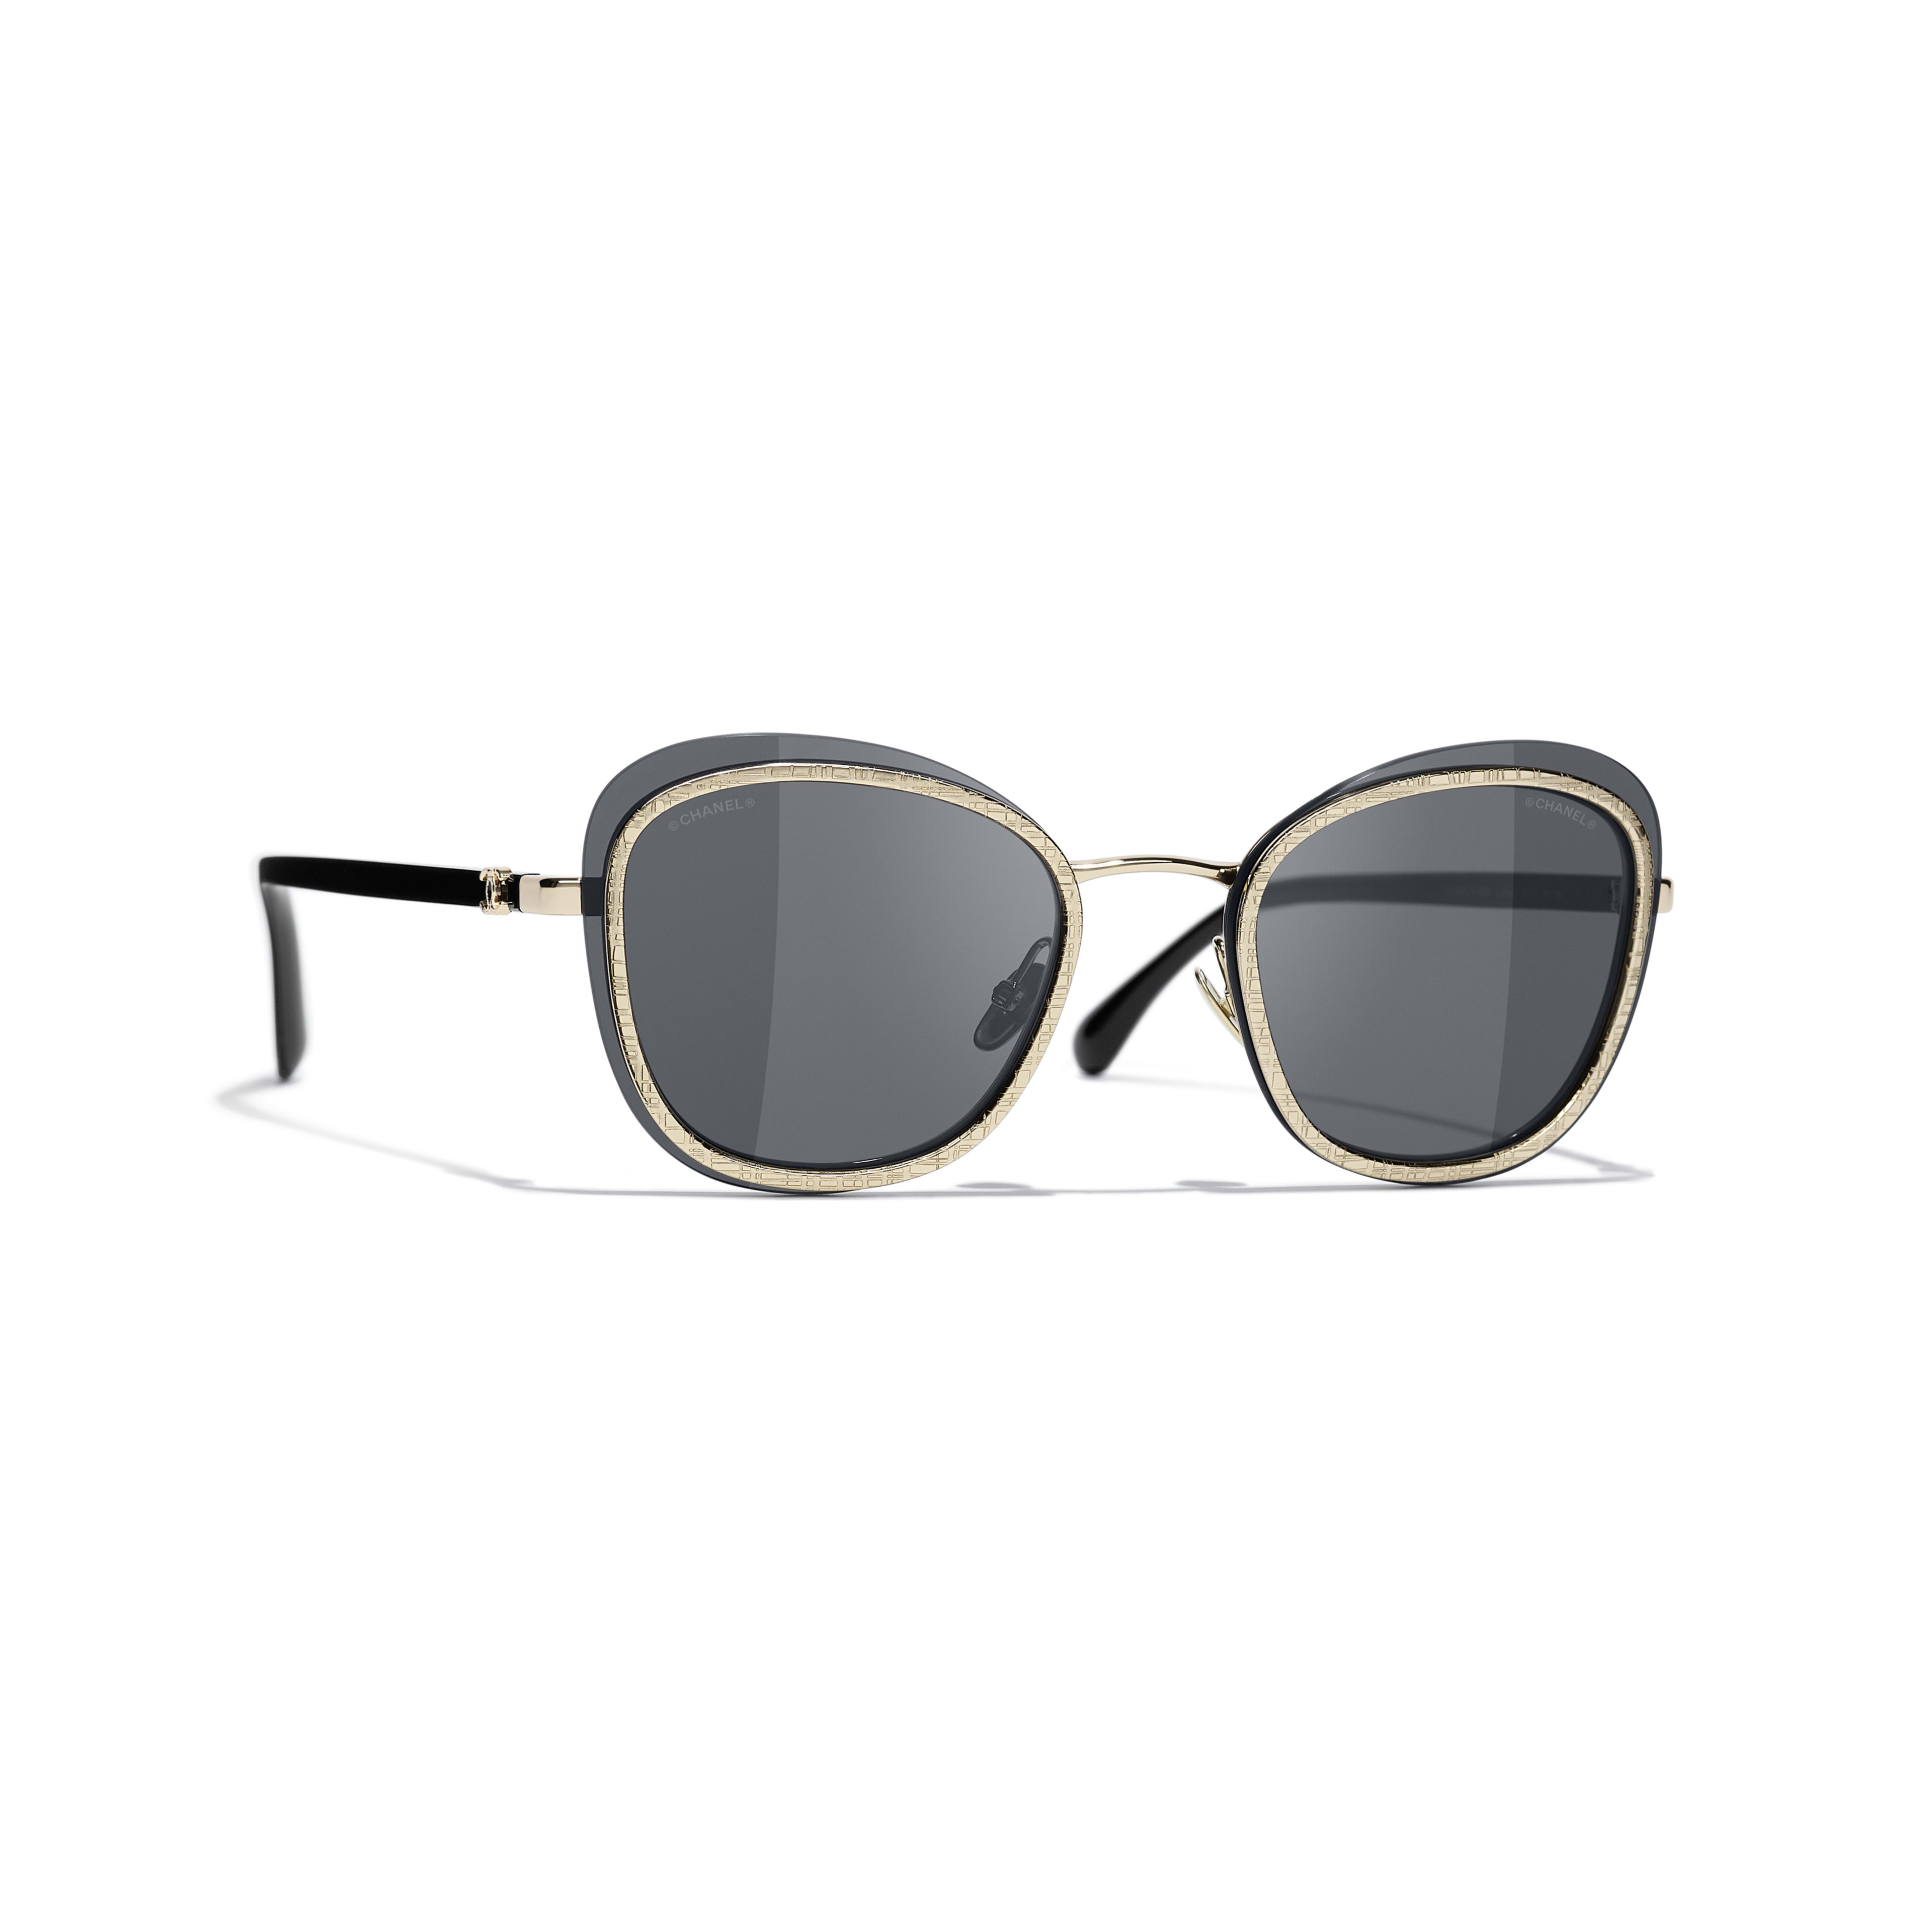 Pantos Sunglasses - Black & Gold - Acetate & Metal - CHANEL - Default view - see standard sized version